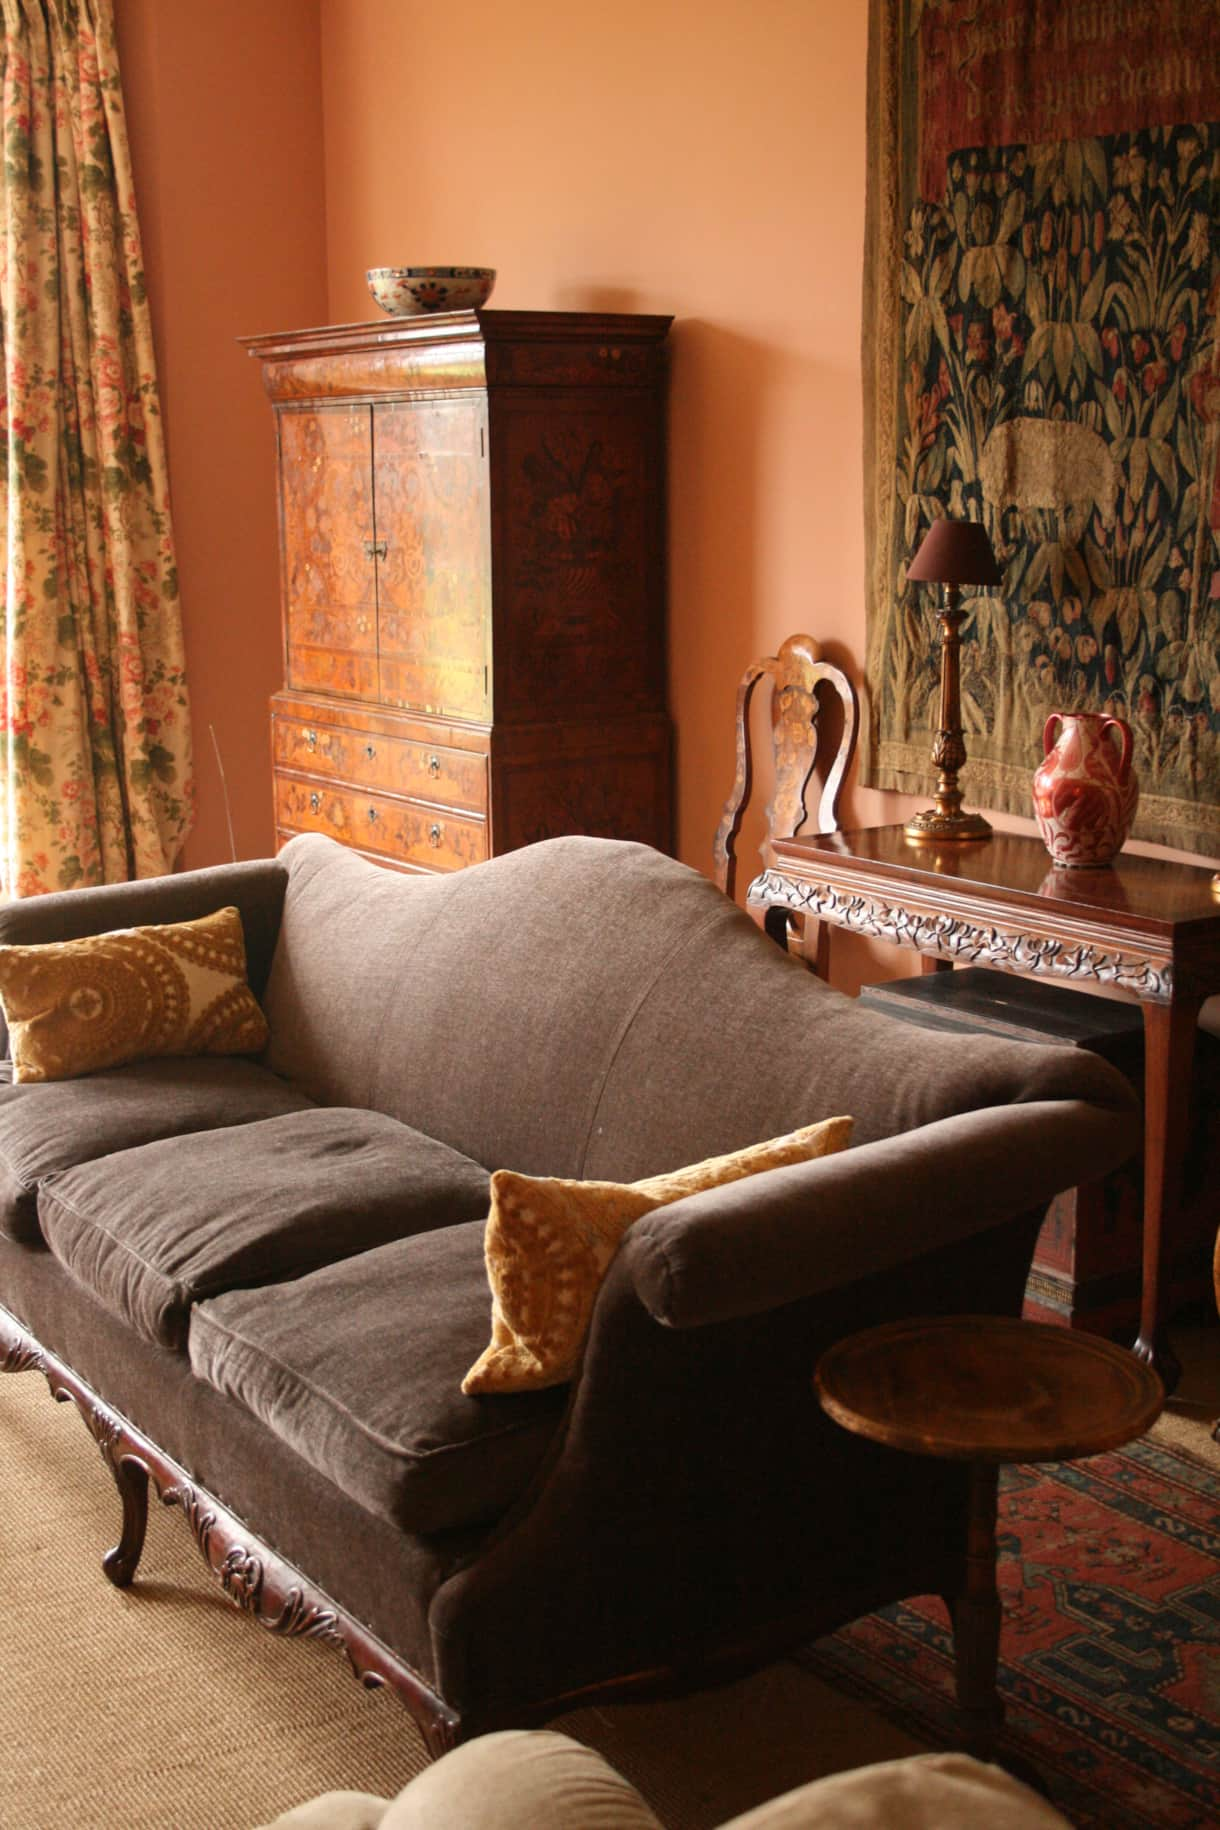 Pigeon House B&B drawing room